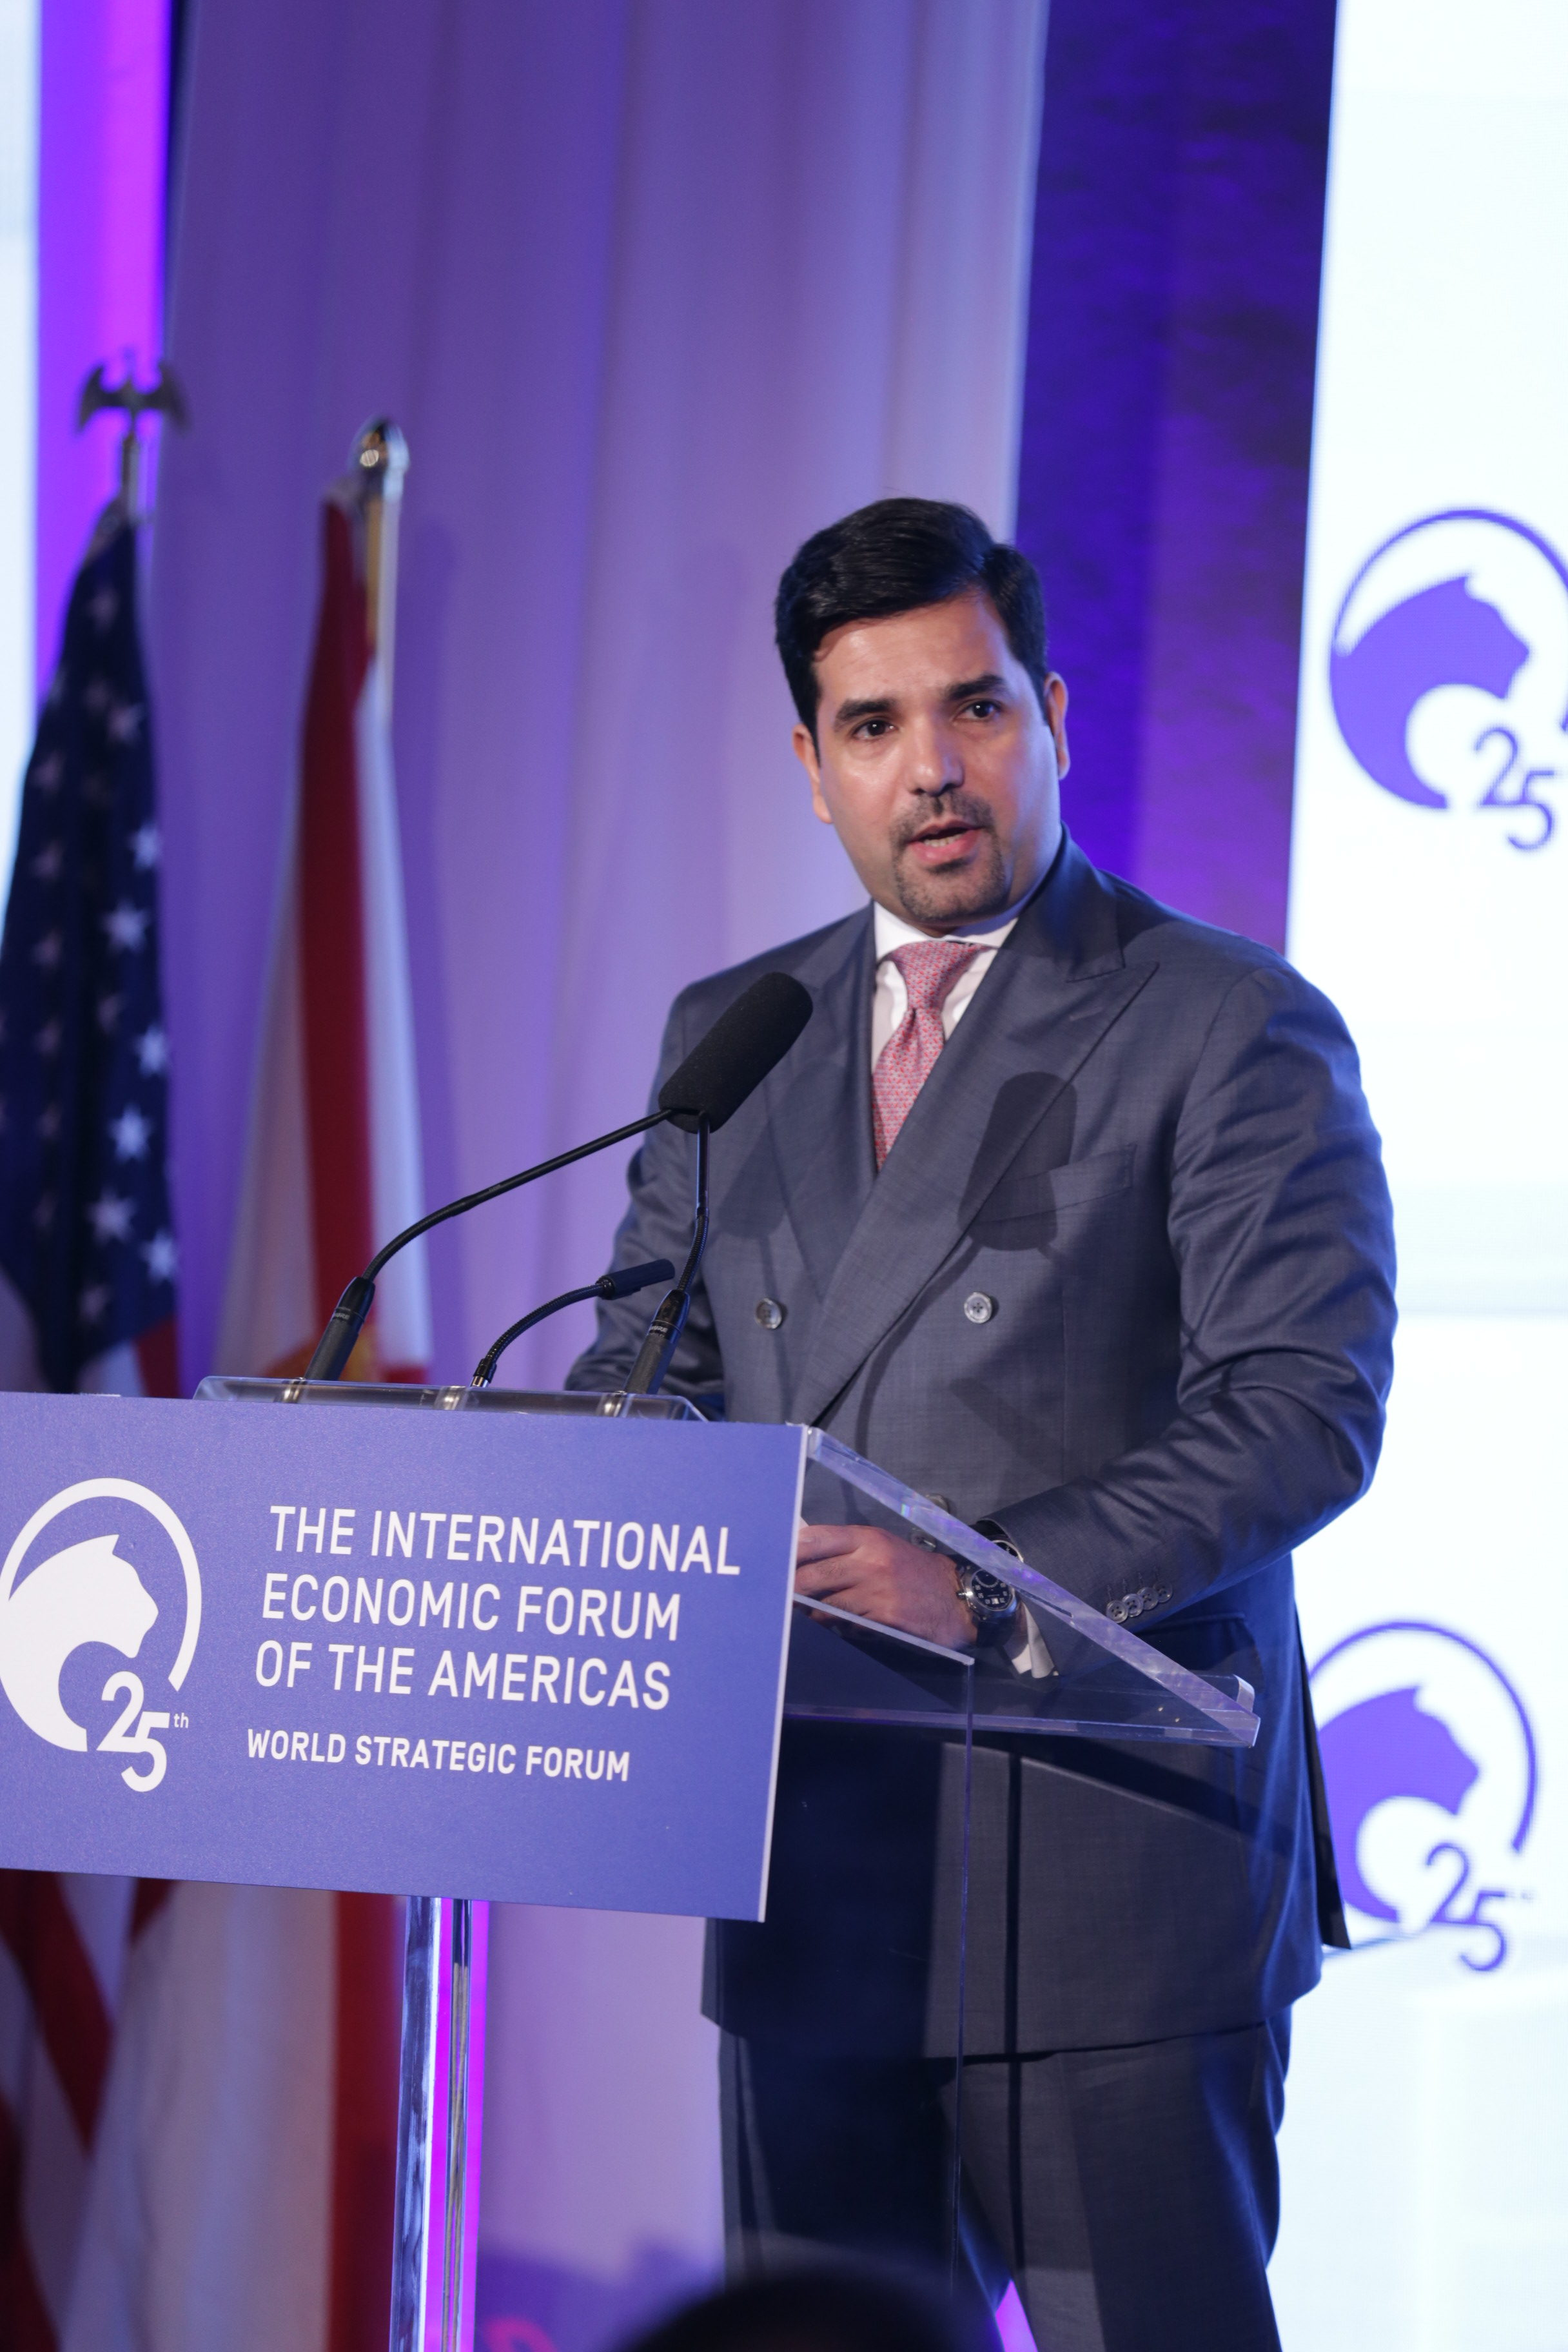 Sheikh Meshal bin Hamad Al Thani, Ambassador of the State of Qatar to the United States of America - World Strategic Forum 2019